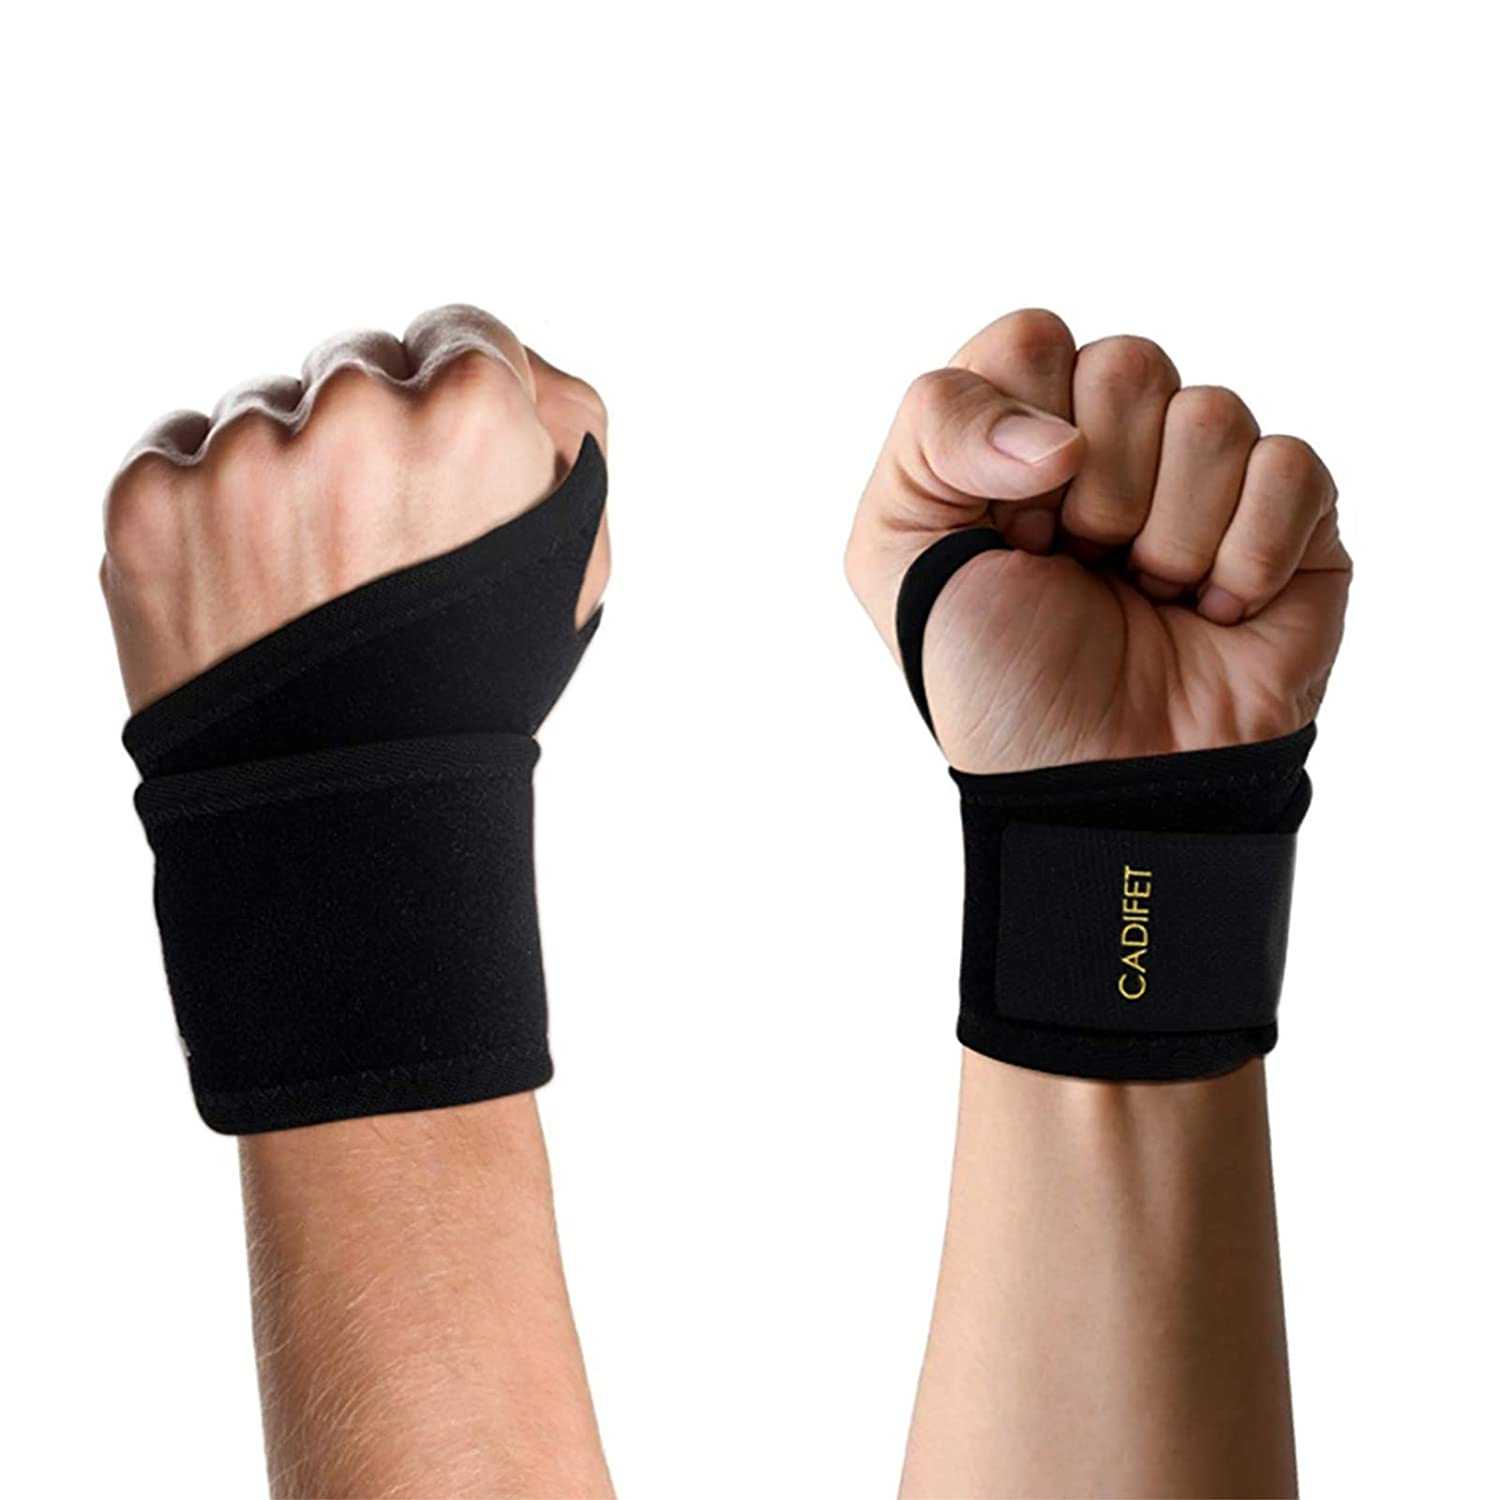 Wrist Brace for Carpal Tunnel, Adjustable Wrist Wrap Support Brace for Arthritis and Tendinitis, Wrist Strap with Pain Relief, Fit for Both Left Hand and Right Hand-Single